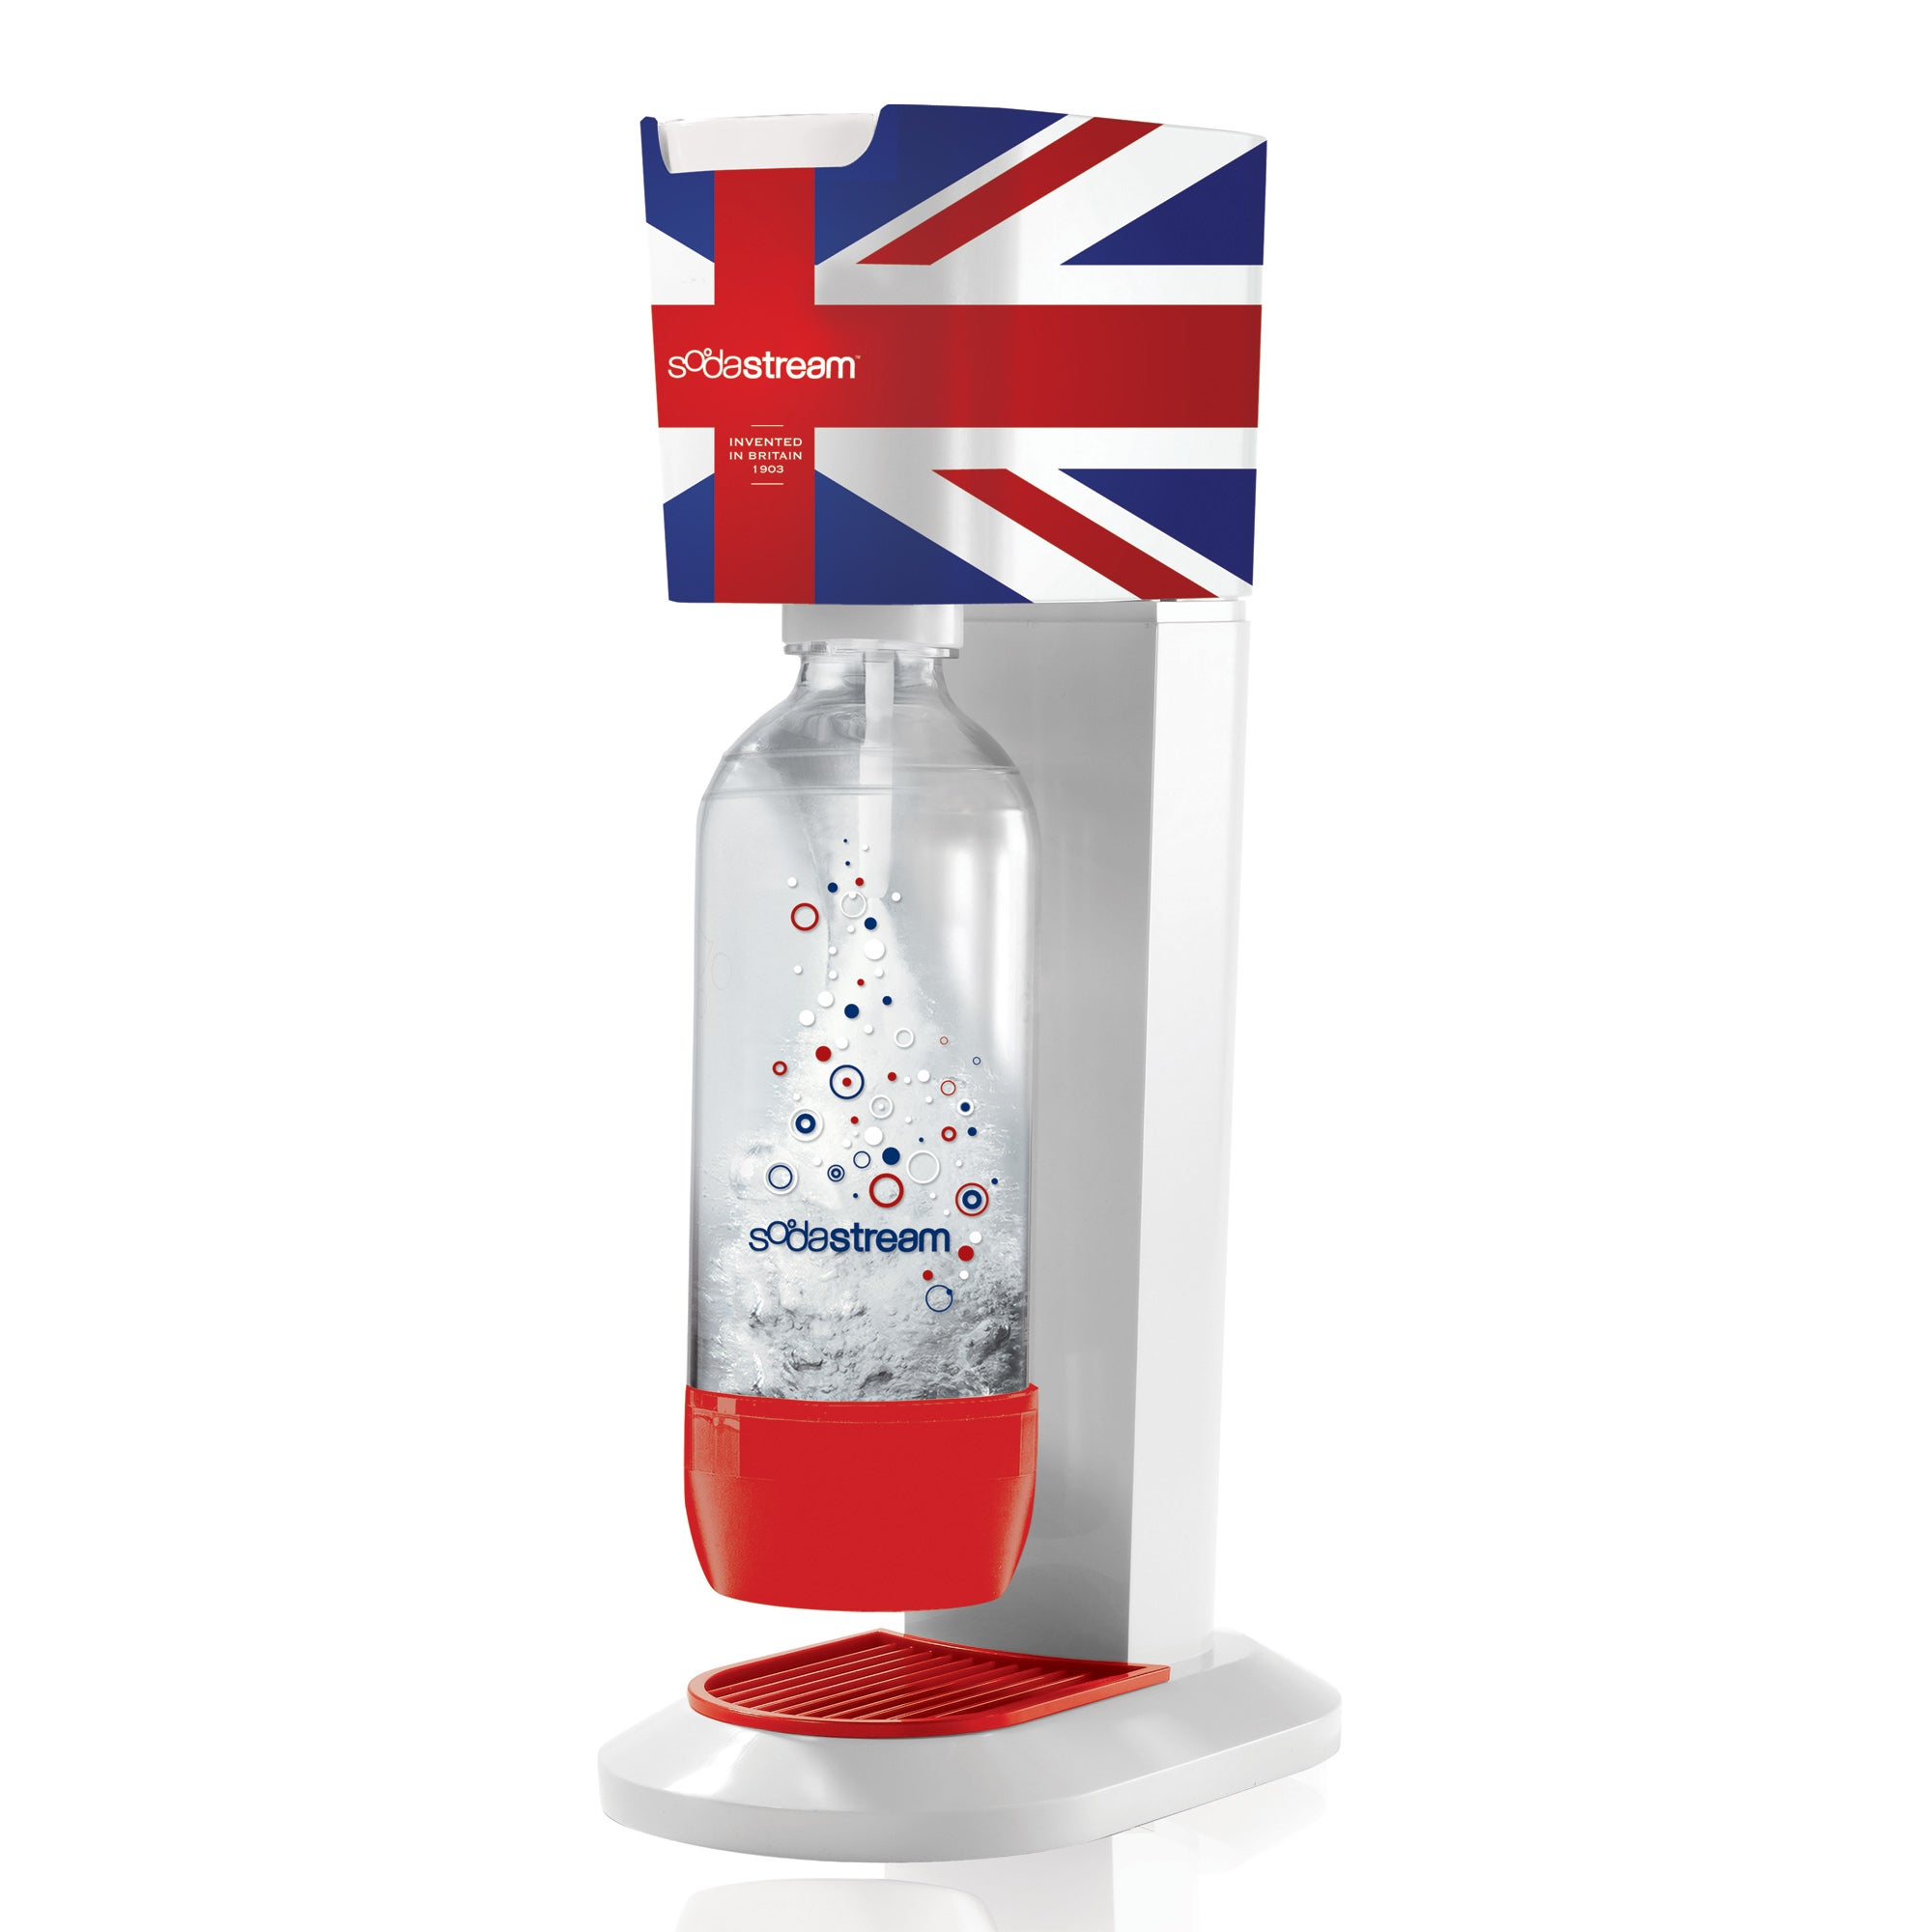 SodaStream Union Jack Genesis Drinks Maker